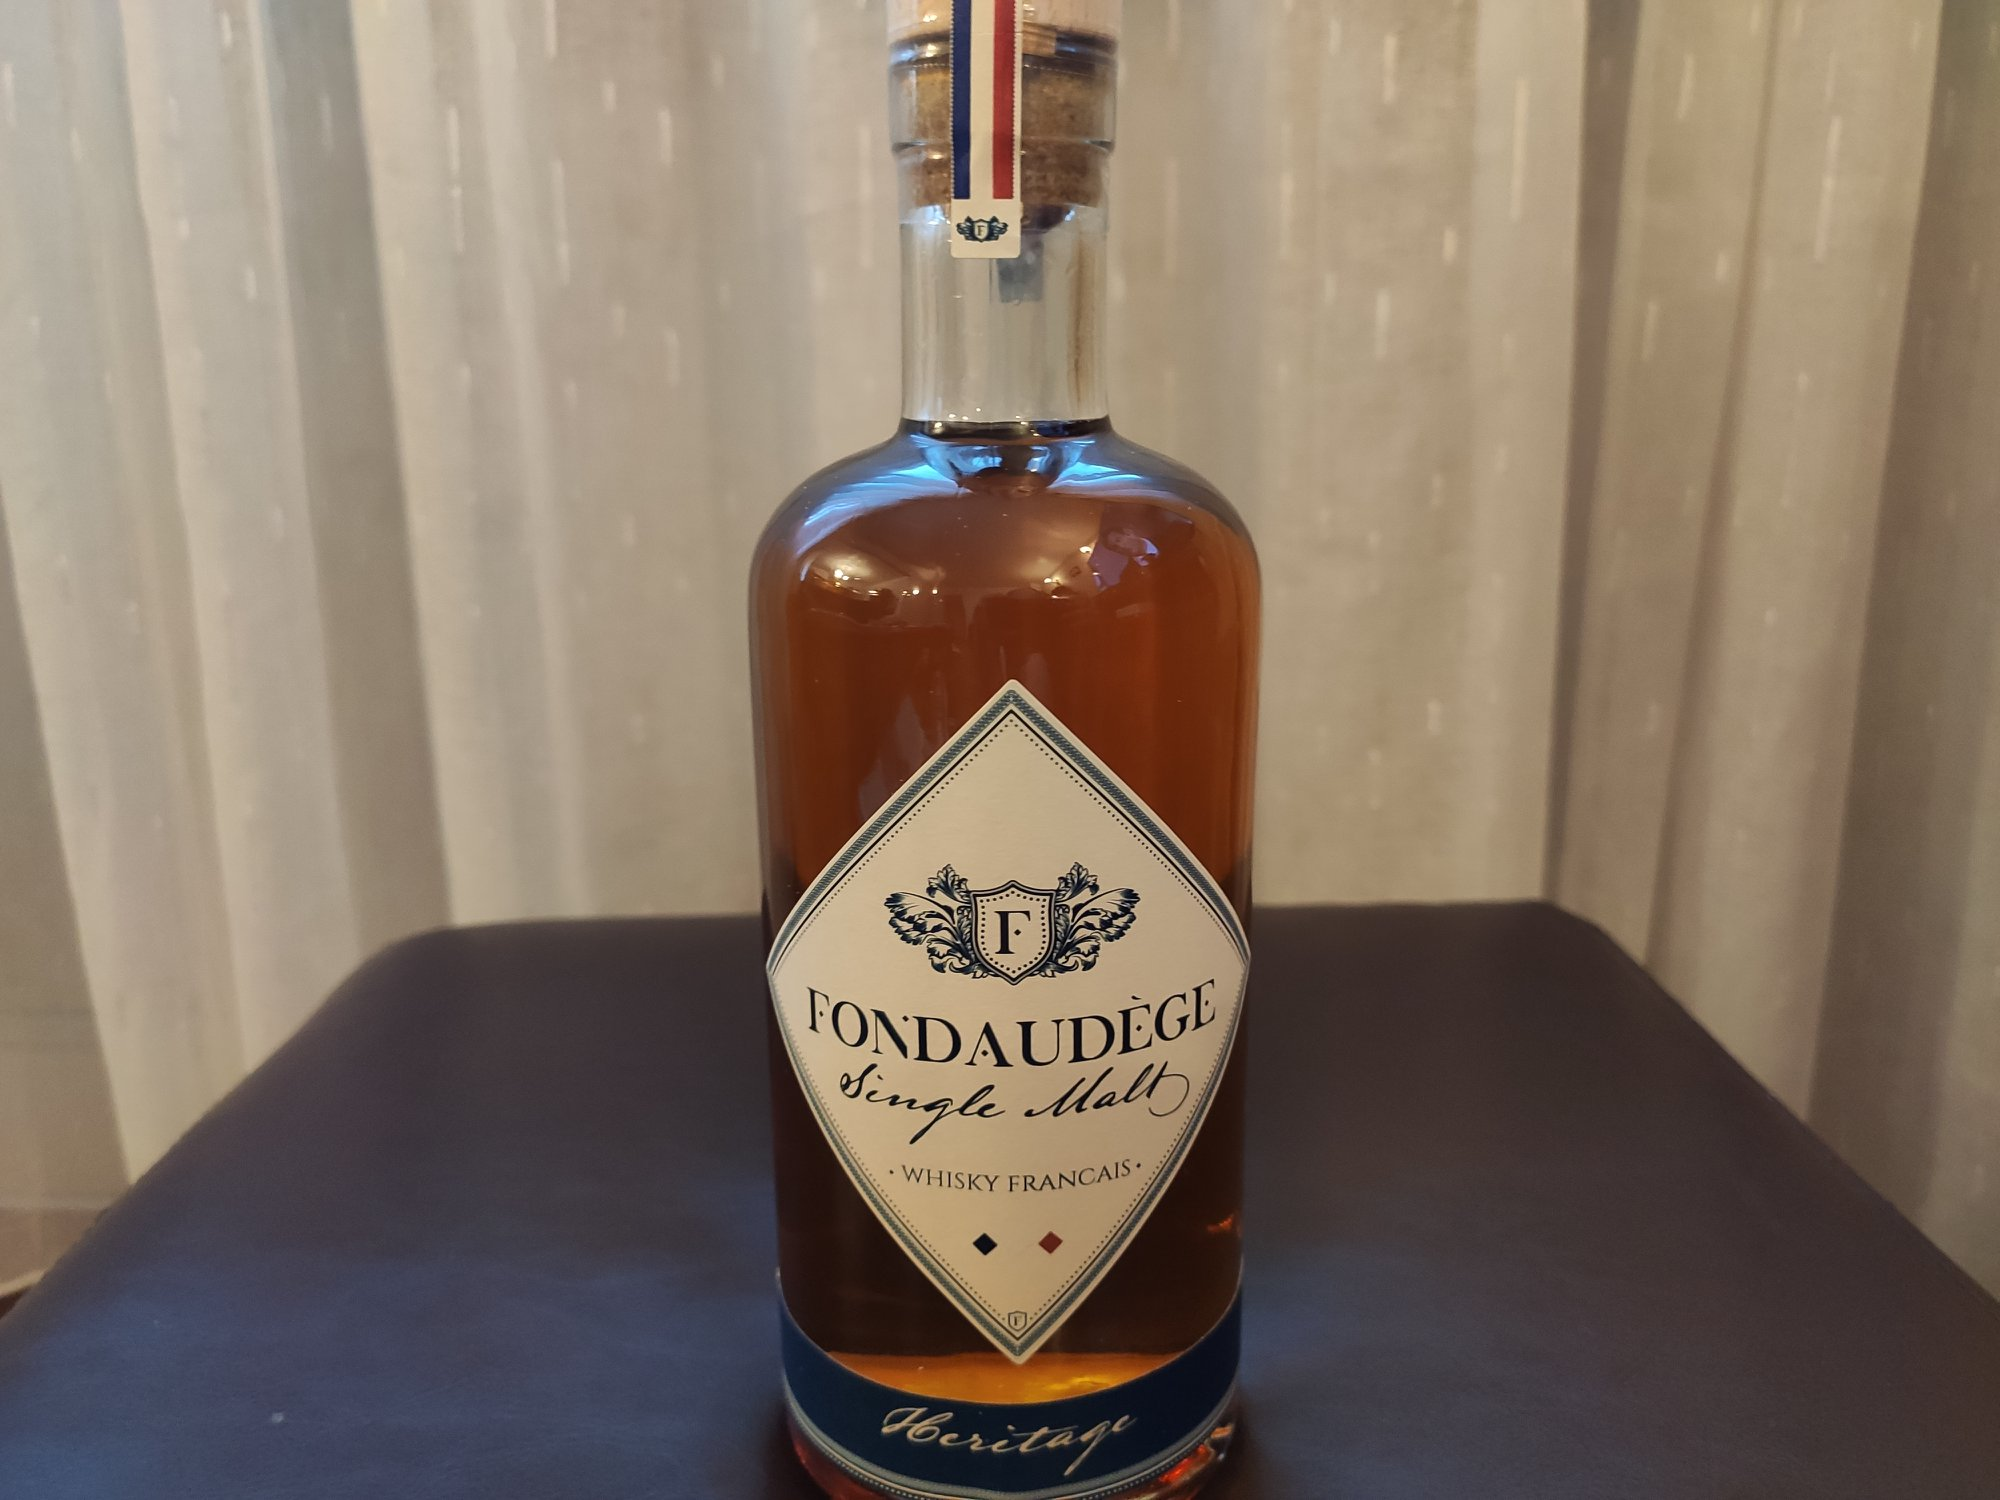 Fondaudège - Single malt - Whiskies du Monde